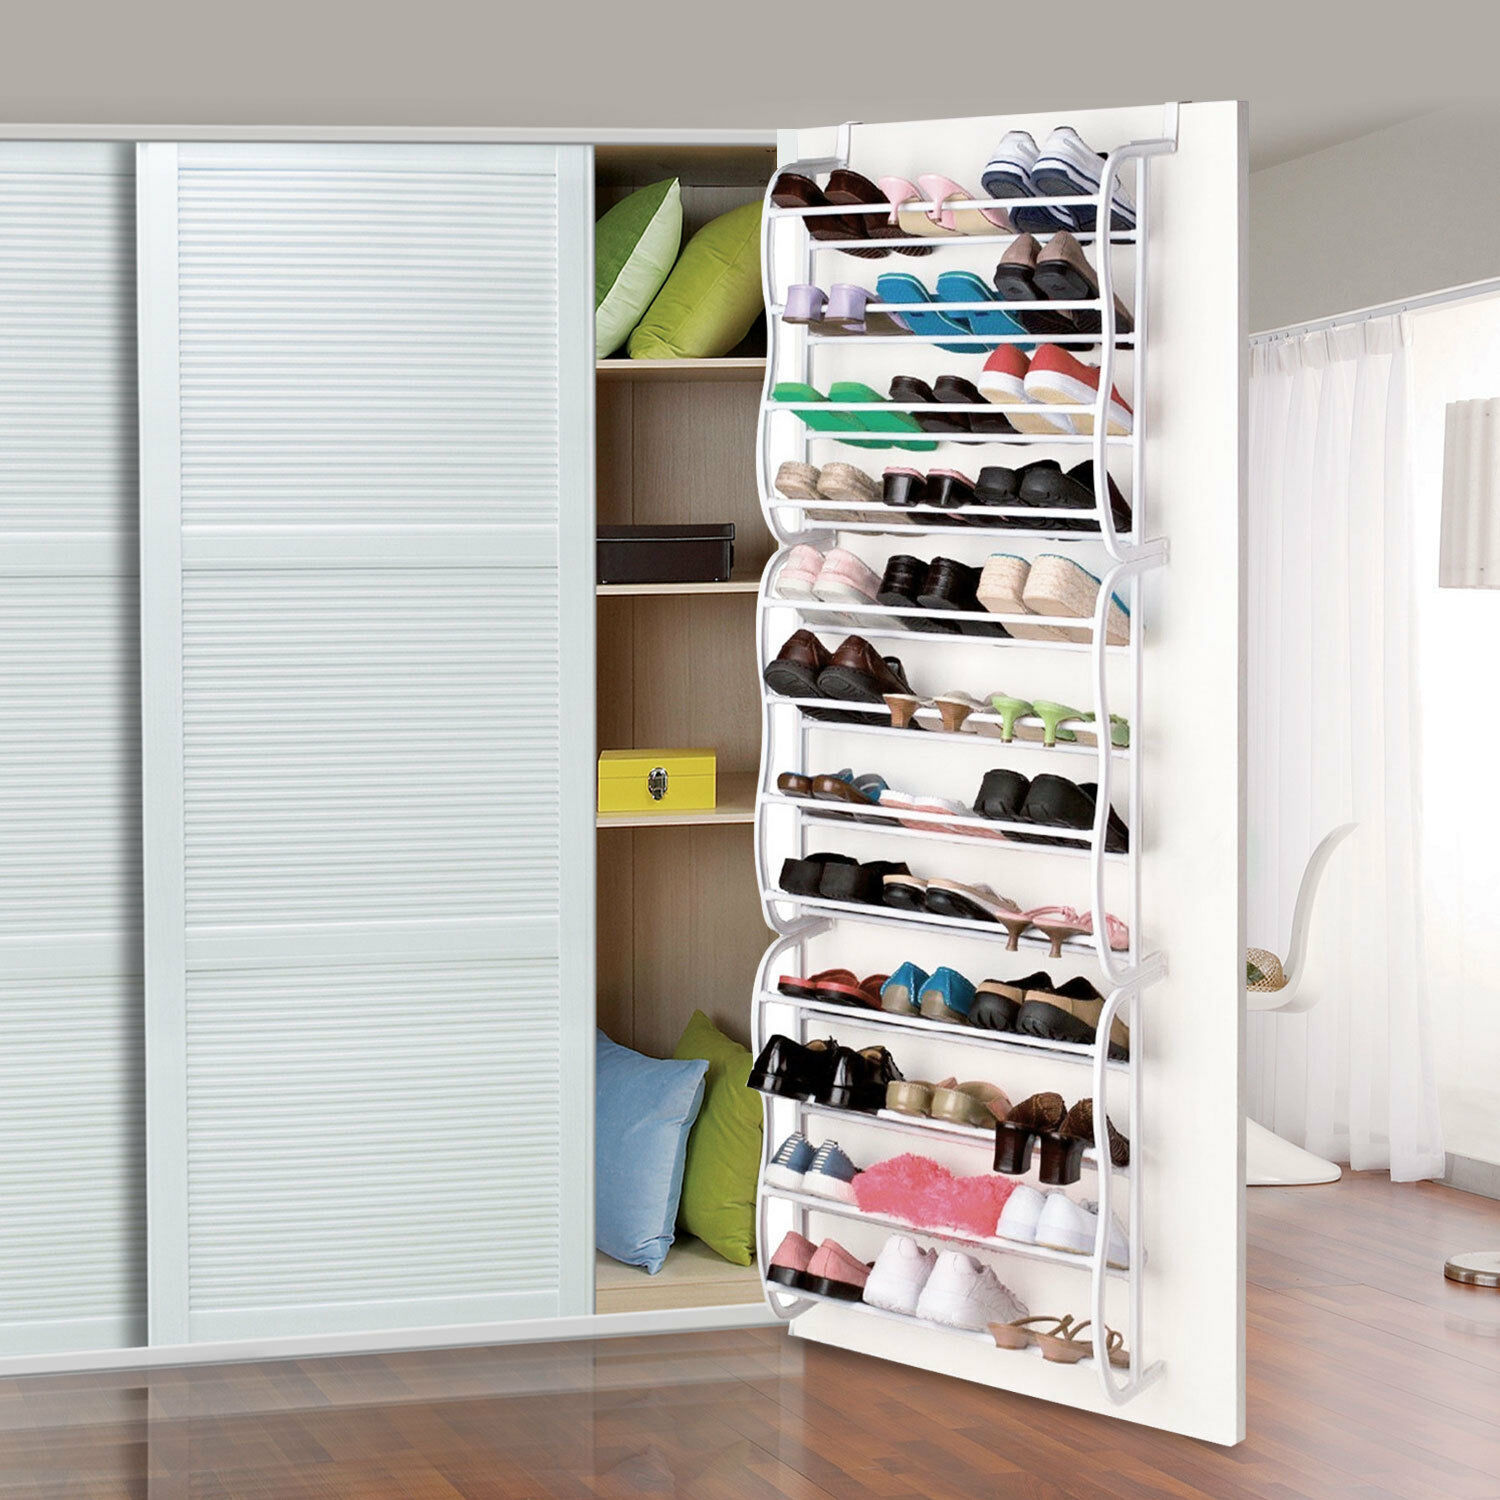 Primary image for Over-The-Door Shoe Rack for 36 Pair Wall Hanging Closet Organizer Storage Stand